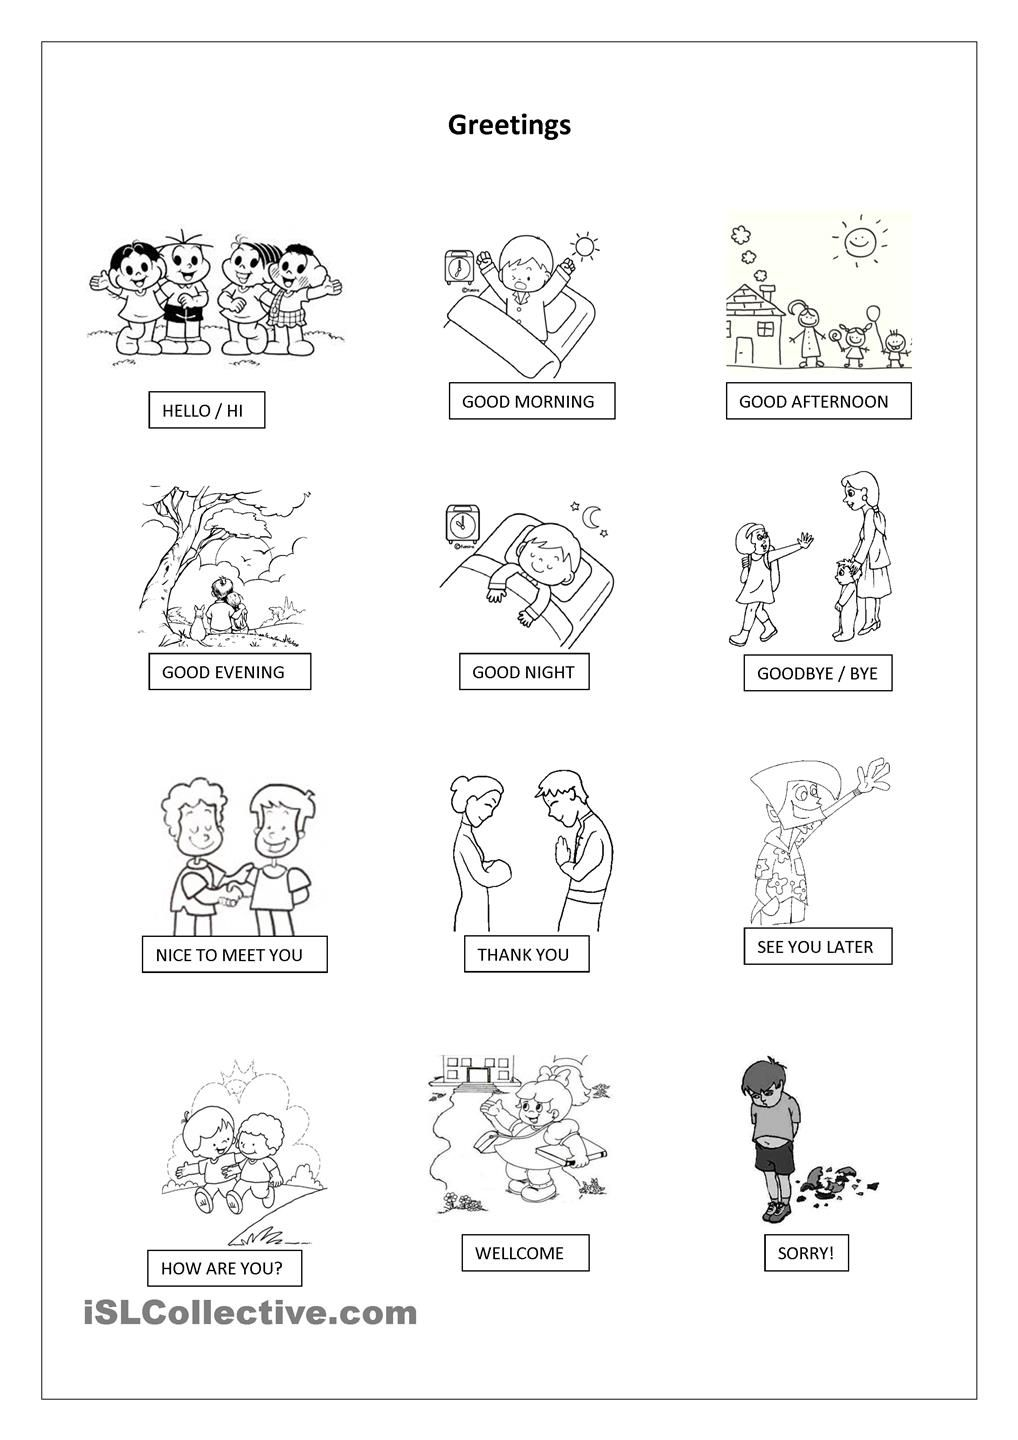 Worksheets Spanish Greetings Worksheets greetings pictionary unit 1 pinterest worksheets printable worksheet free esl made by teachers